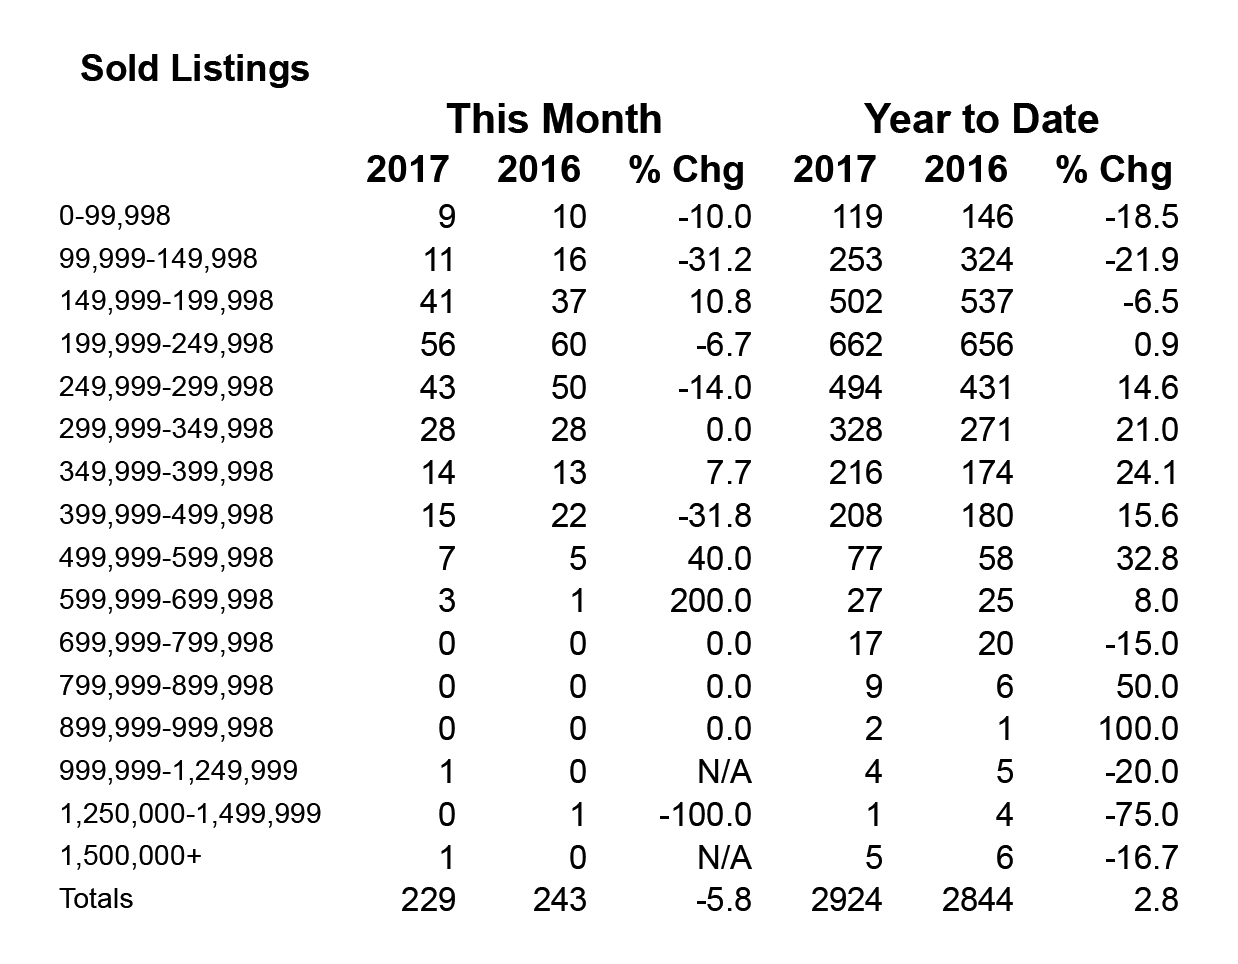 Shasta County Sold Listings